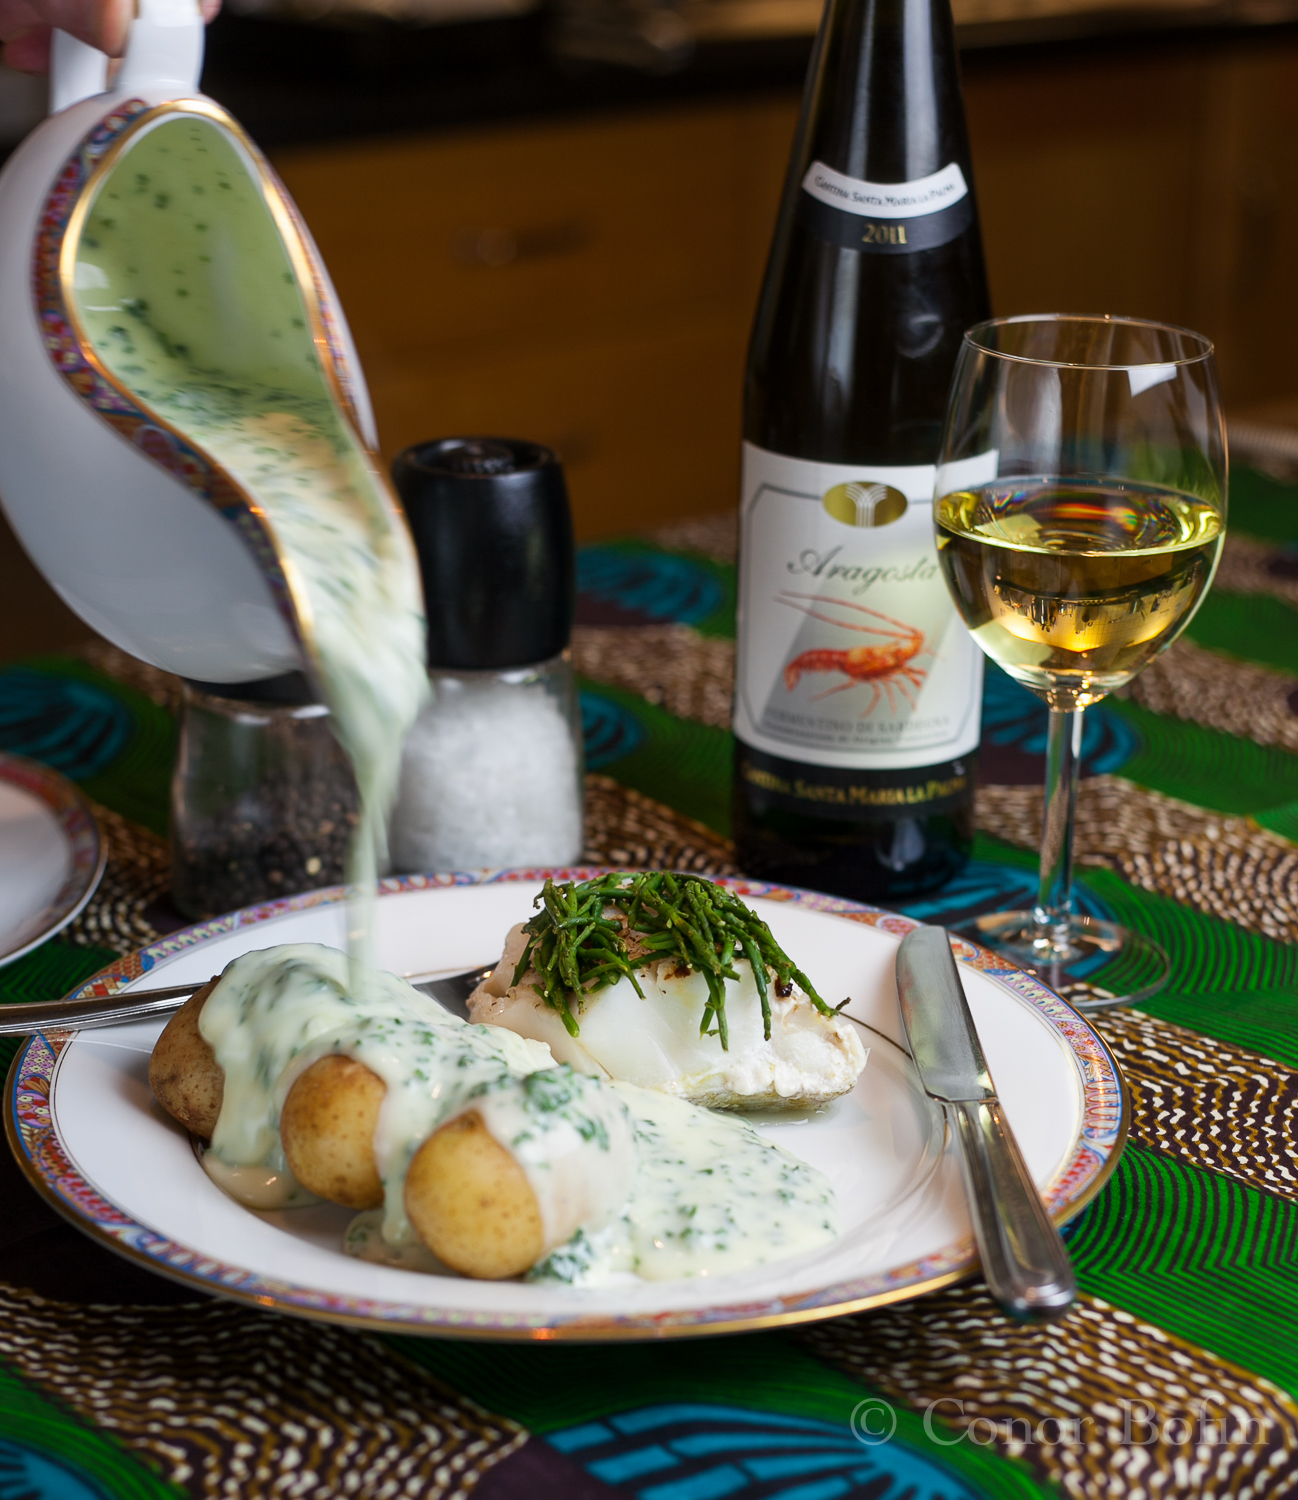 Baked Cod and Parsley Sauce